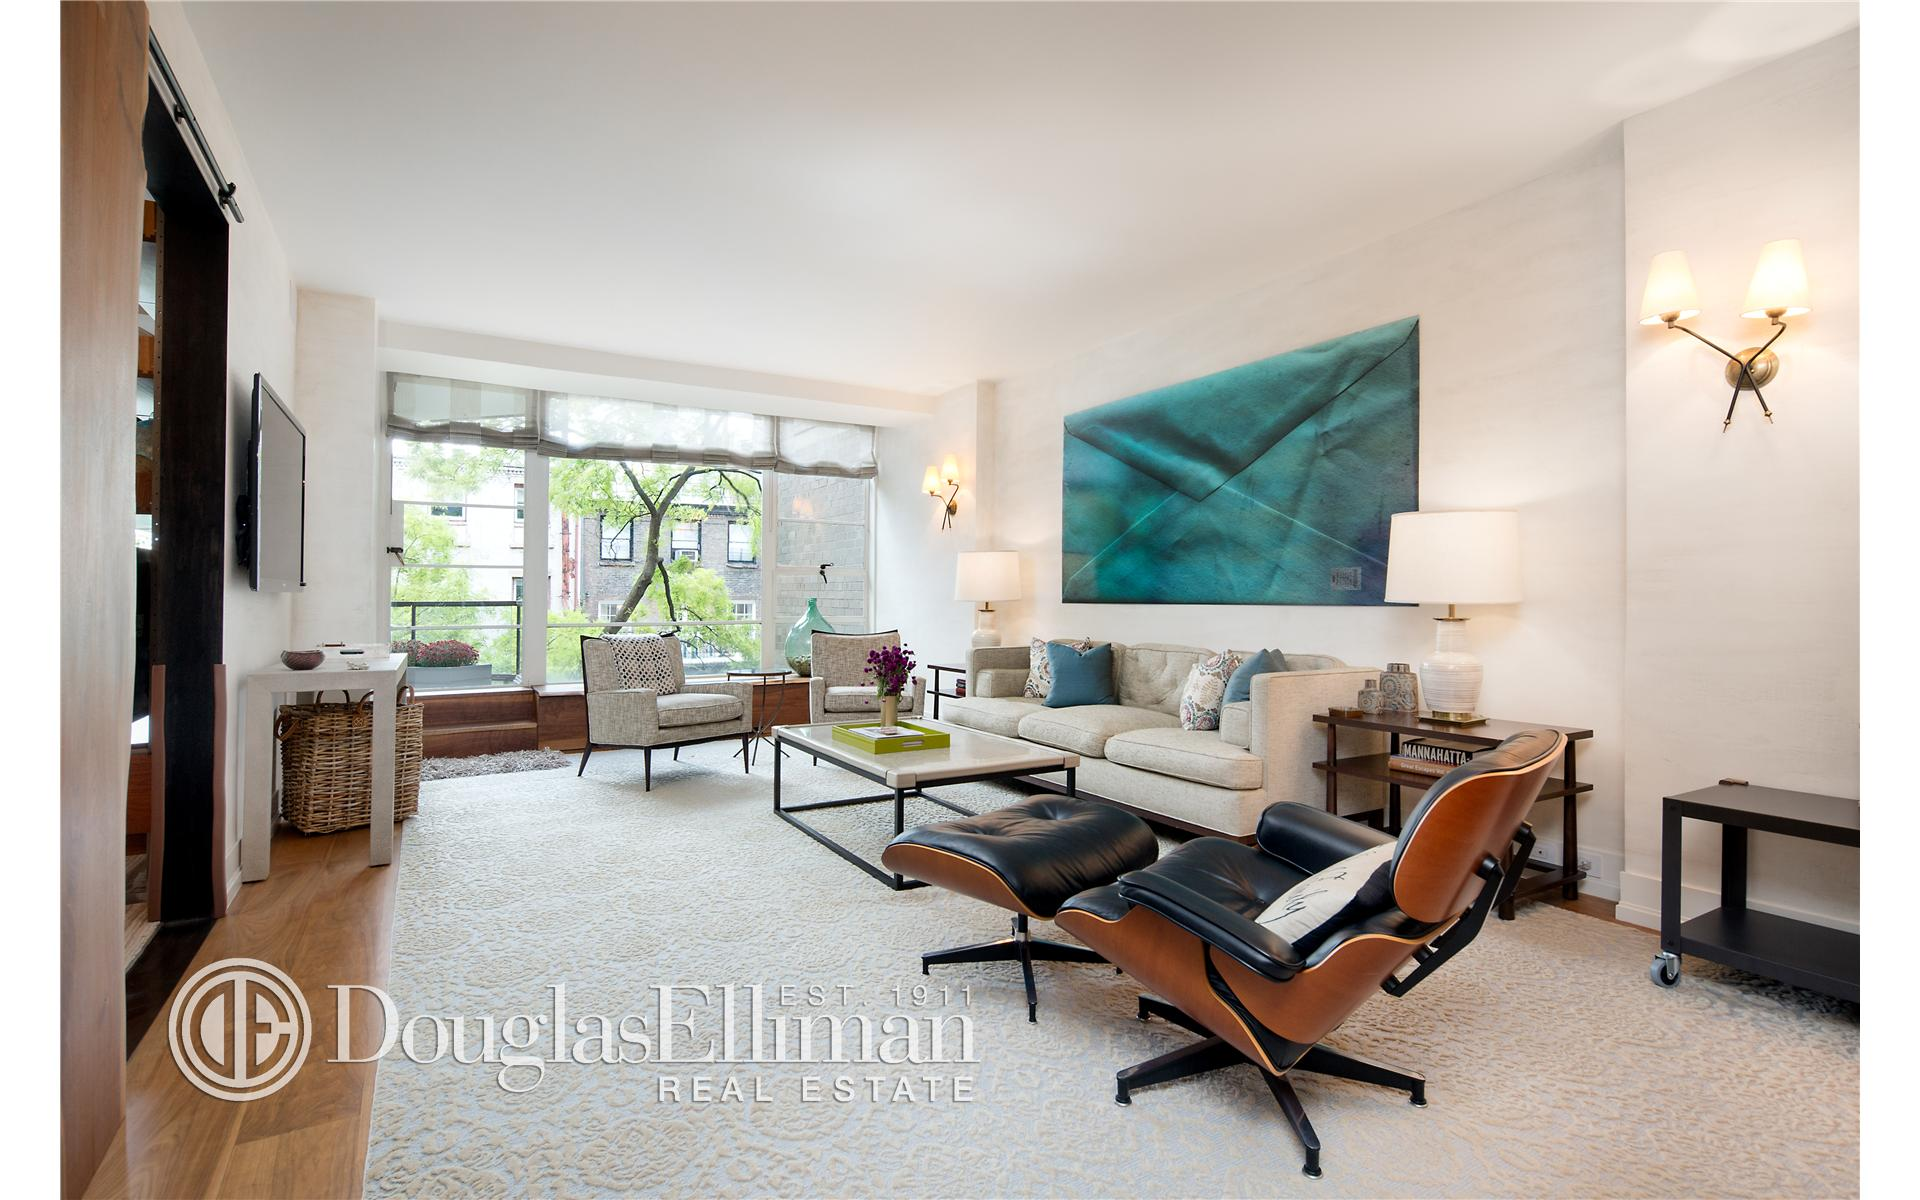 Co-op for Sale at BUTTERFIELD HOUSE, Butterfield House, 37 West 12th Street New York, New York 10011 United States